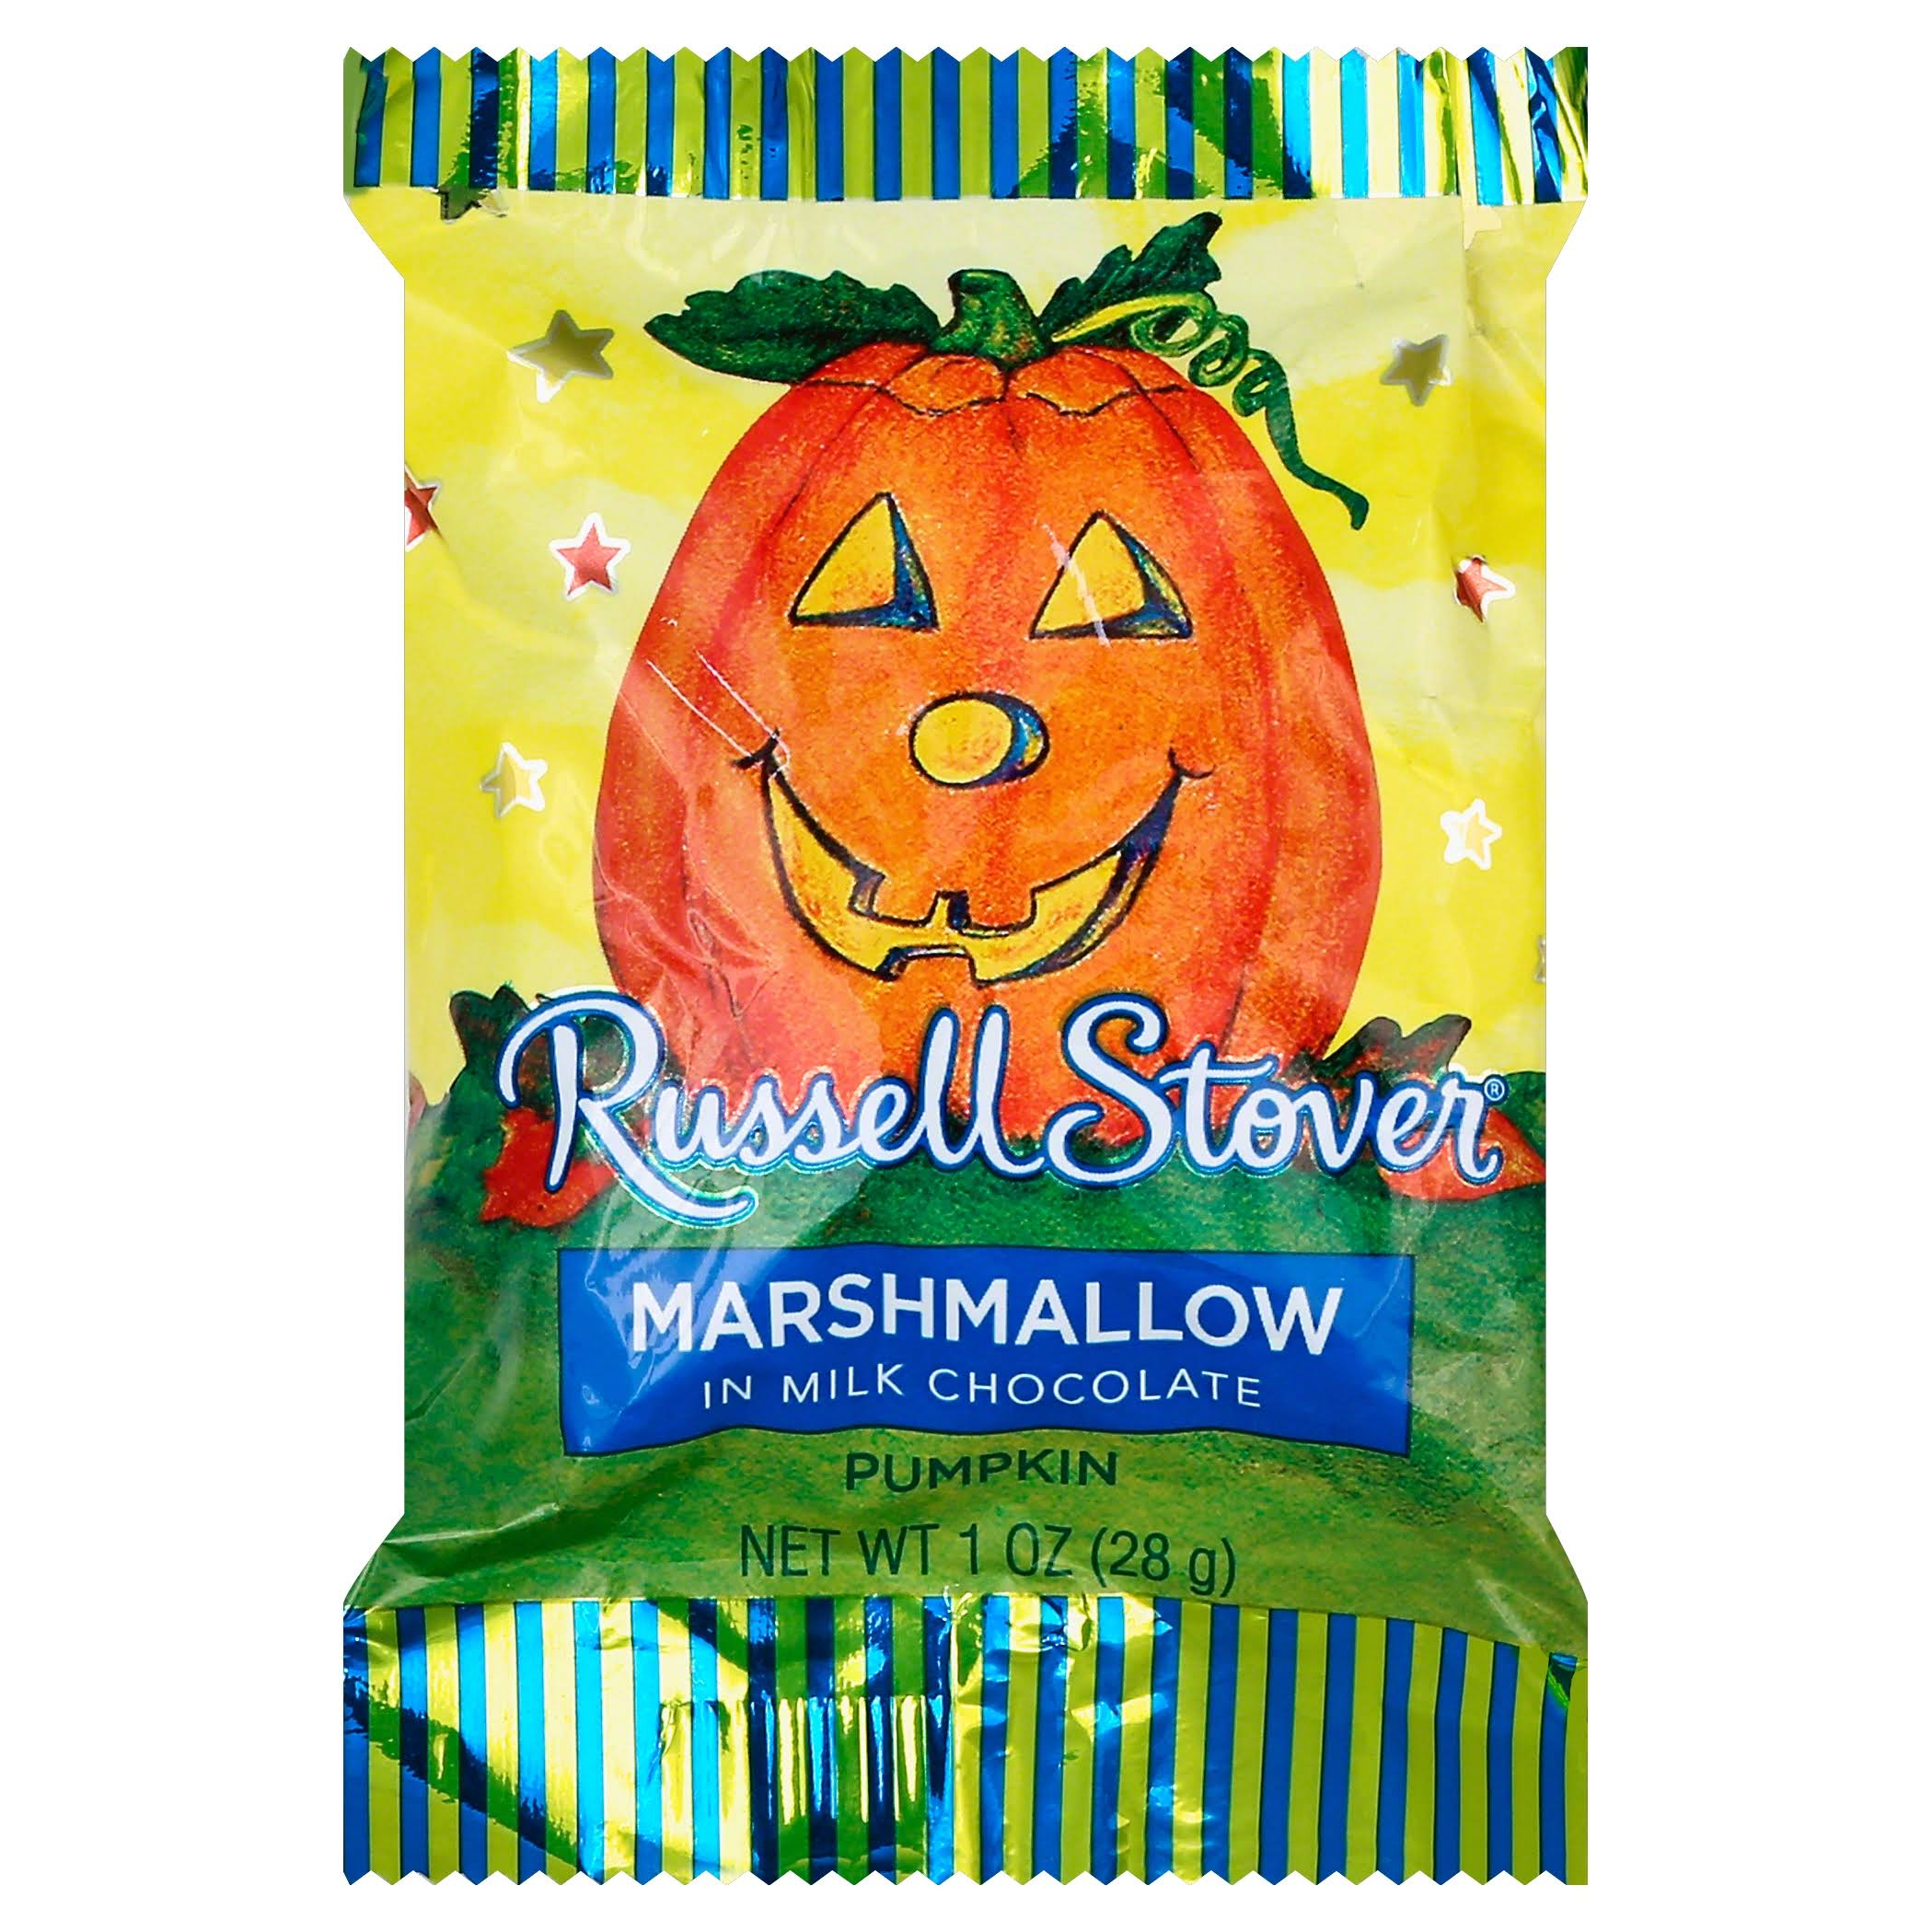 Russell Stover Marshmallow in Milk Chocolate Pumpkin